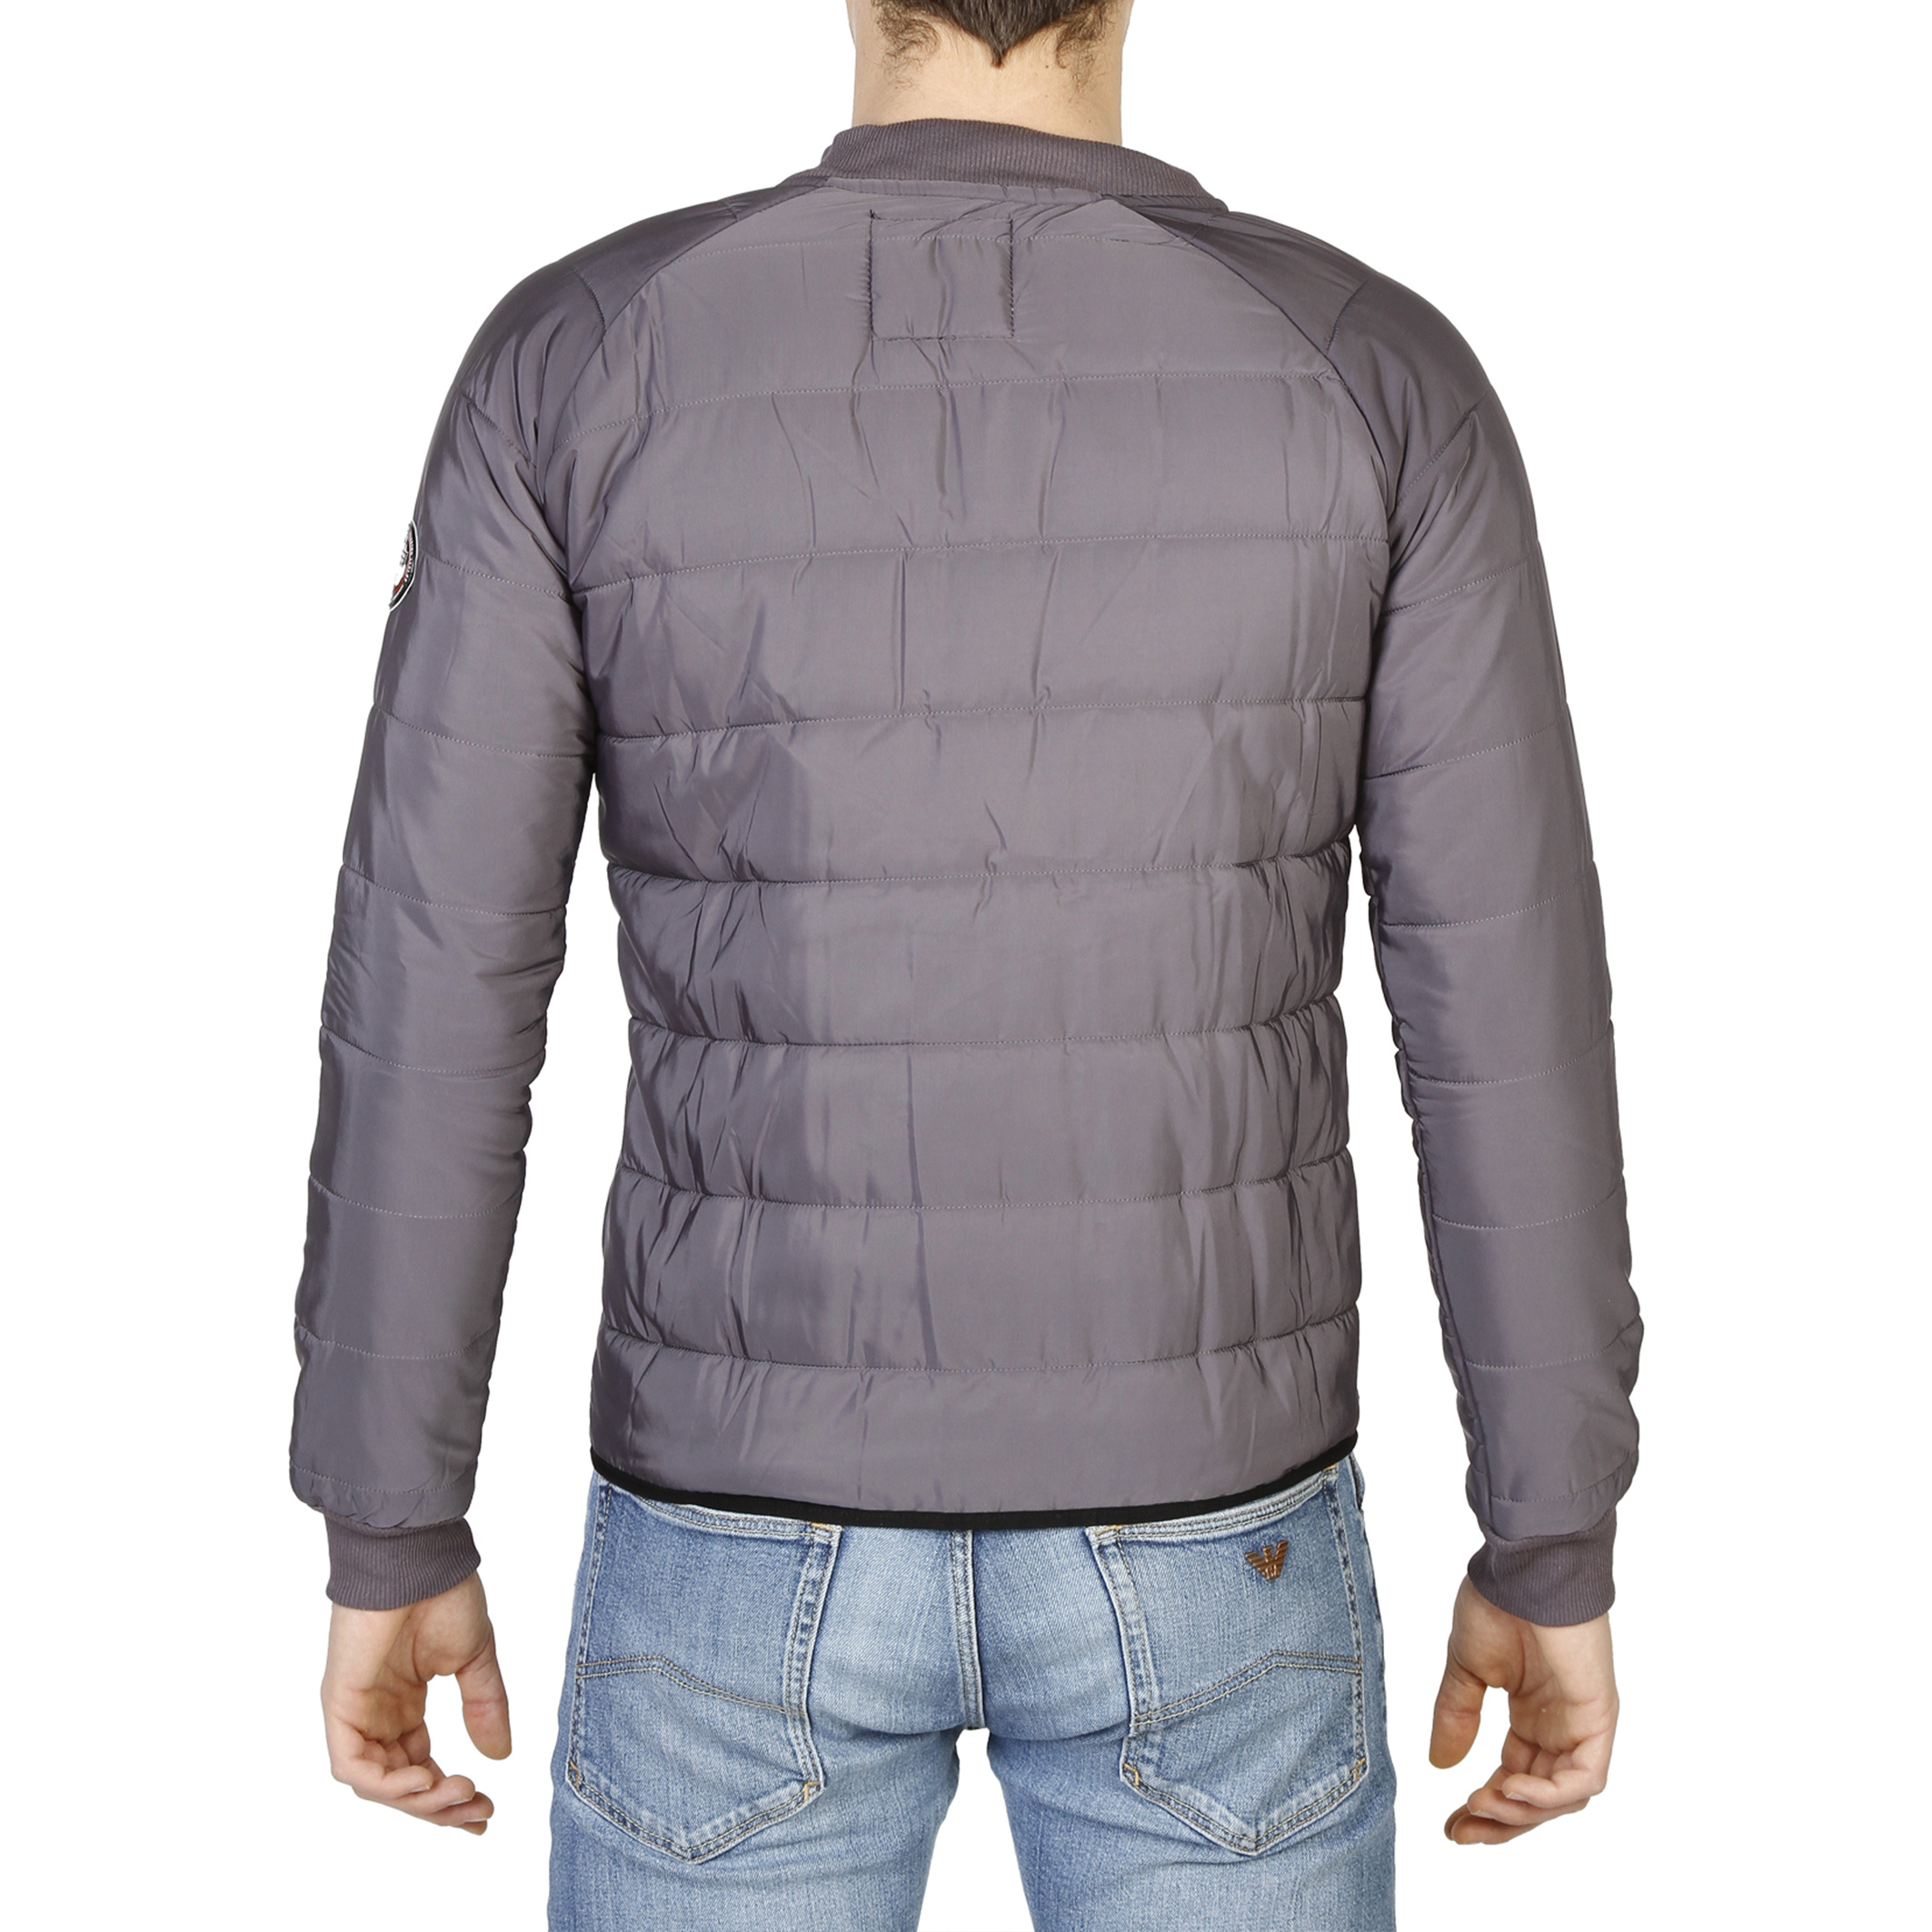 Vestes & blousons  Geographical norway Compact_man grey